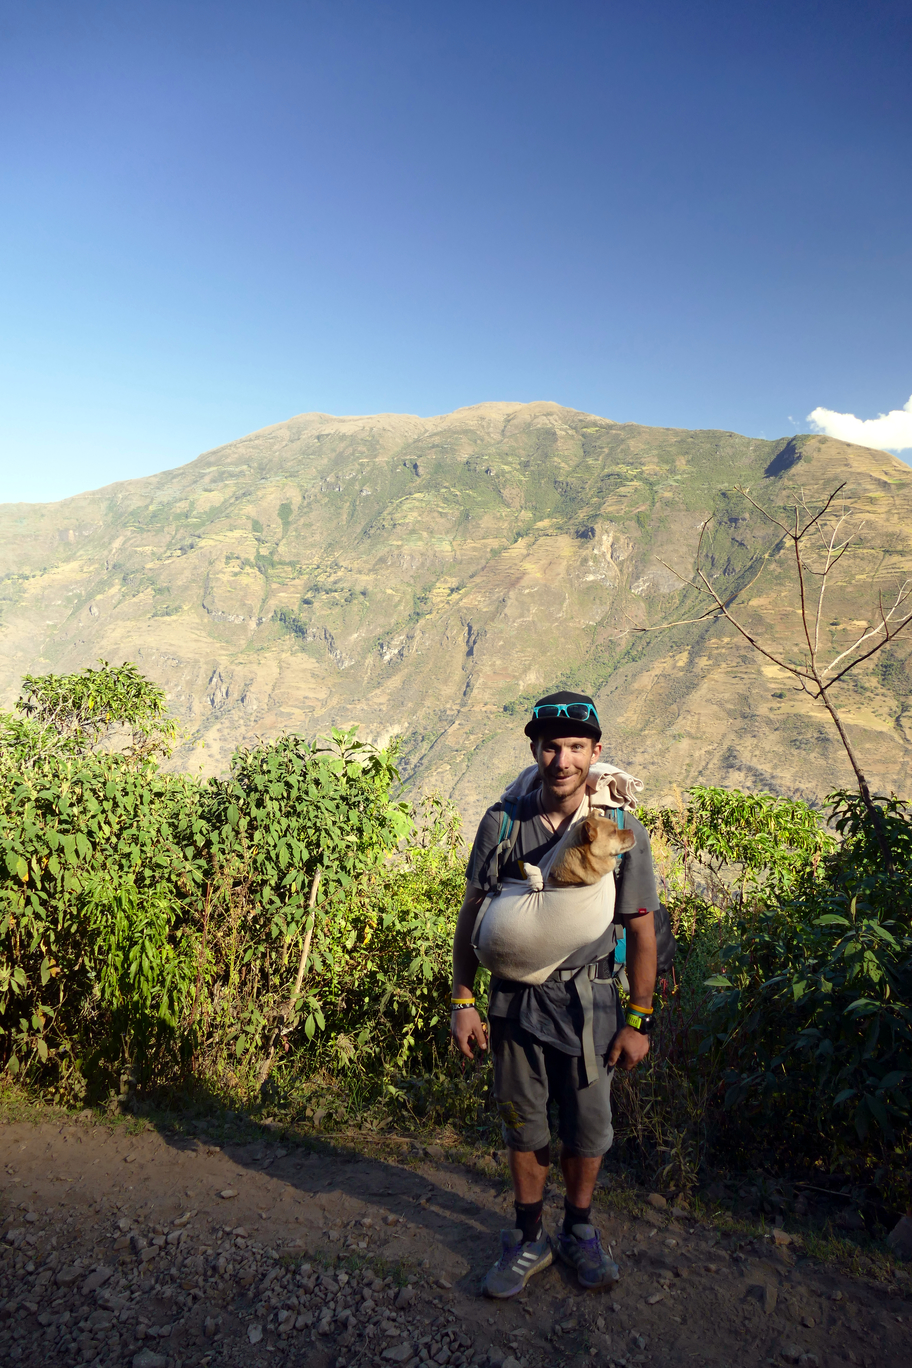 Alwin as pack donkey for Layla on the Choquequirao track